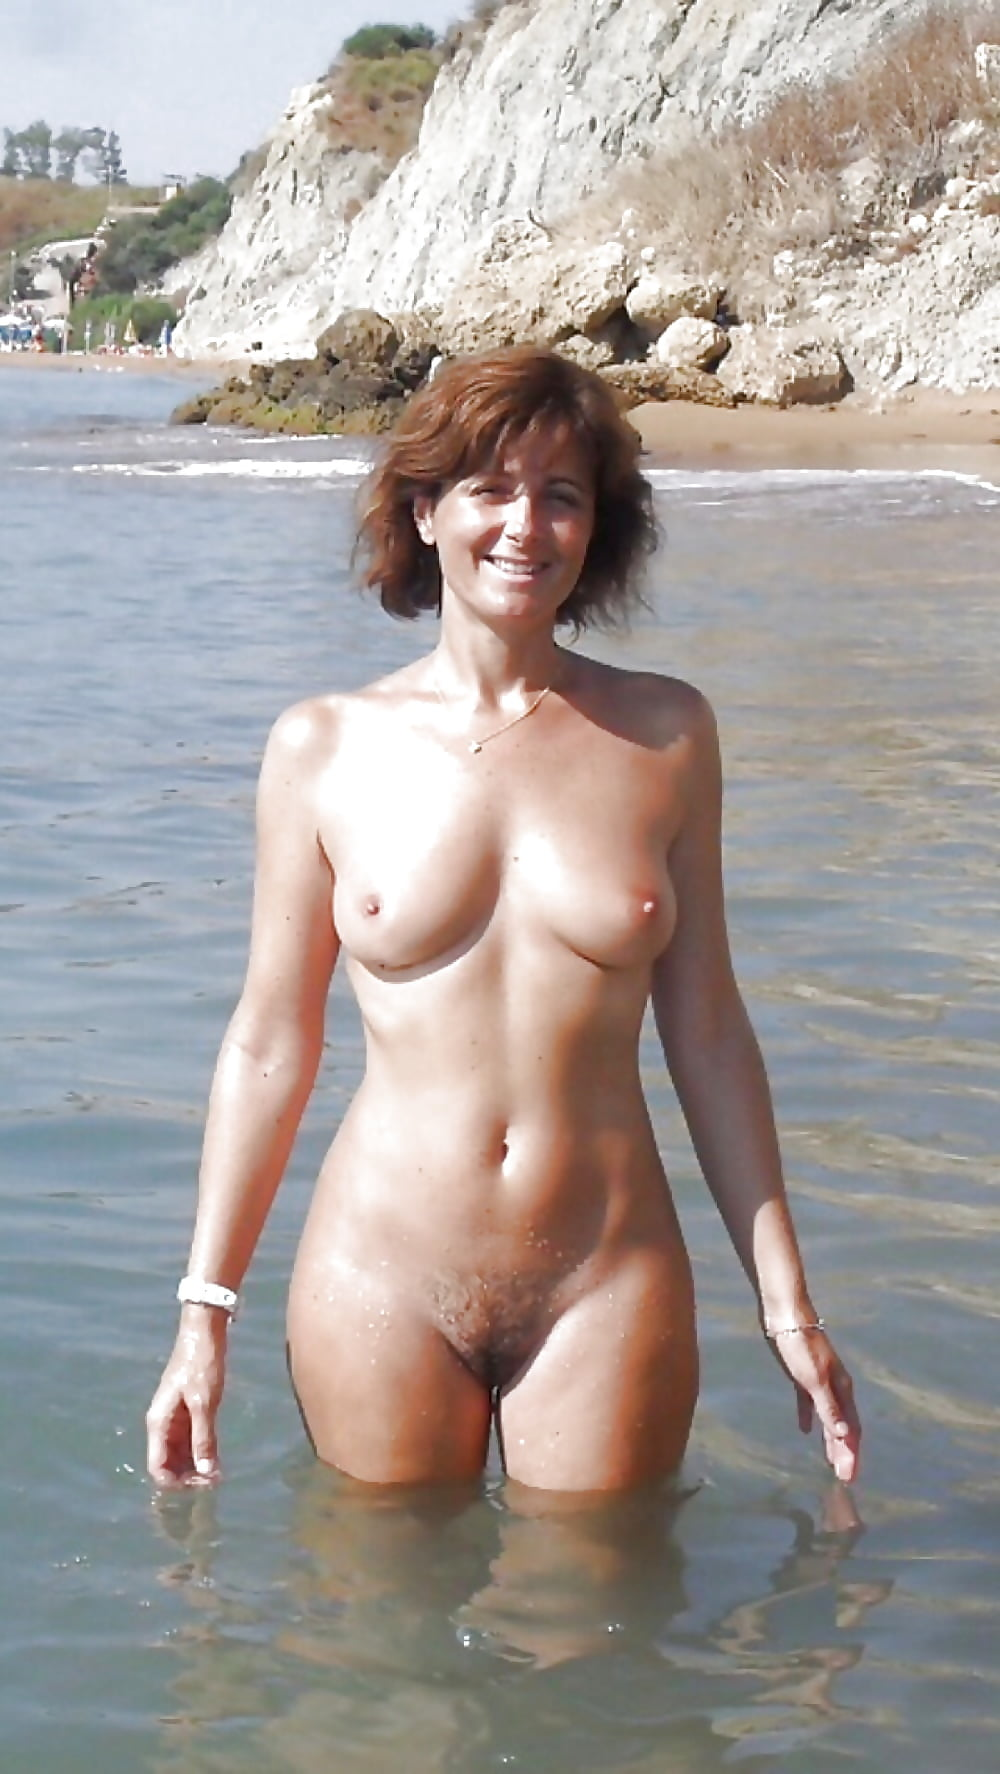 Nude Women On Beach Tumblr